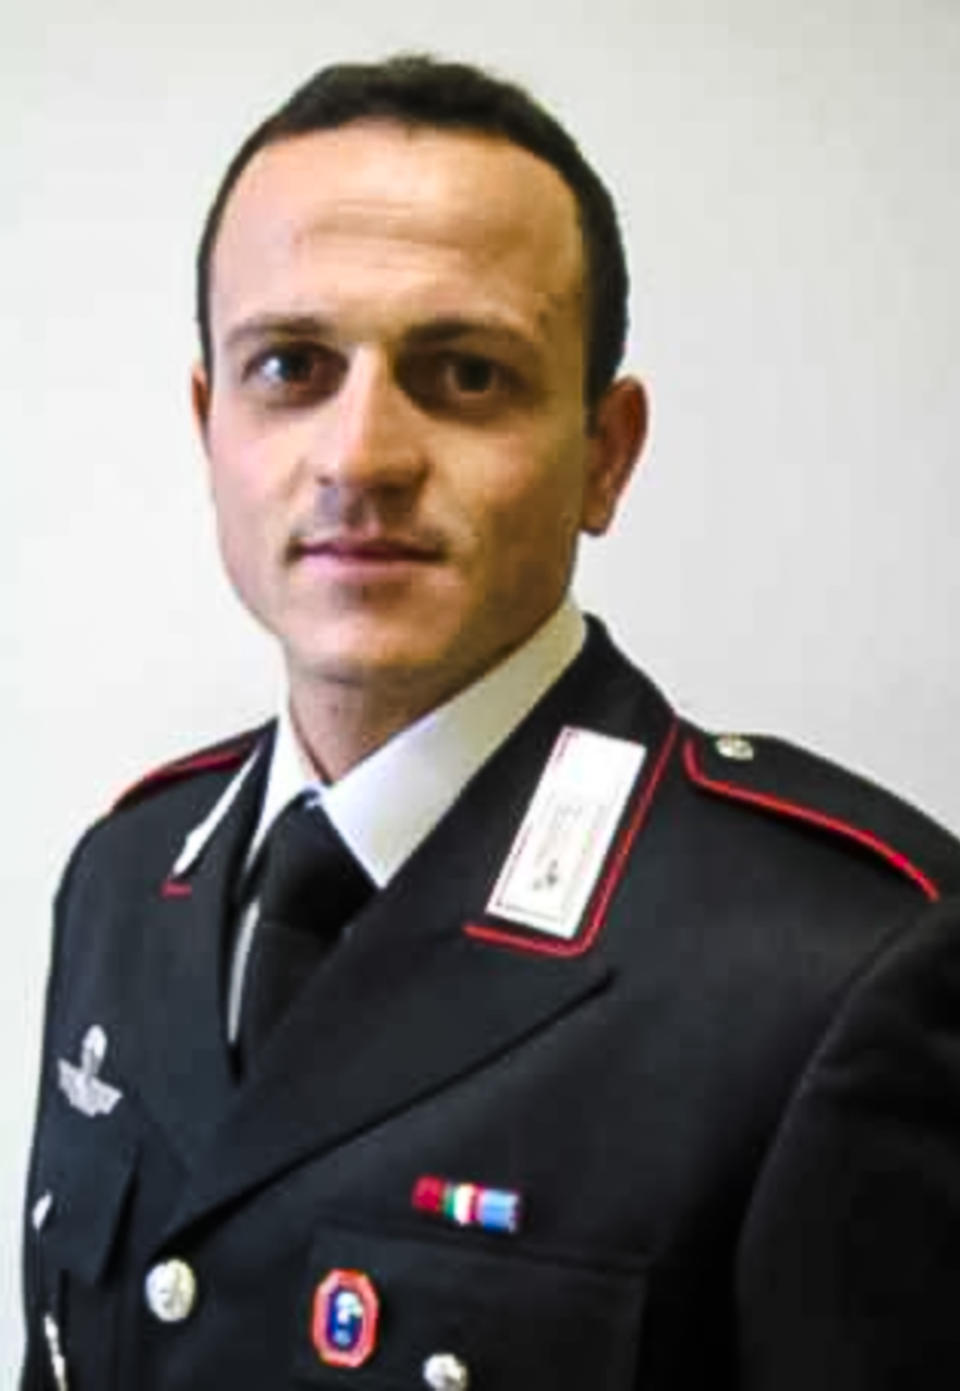 This picture released by the Italian Carabinieri Press Office on Monday, Feb. 22, 2021, shows late Carabinieri officer Vittorio Iacovacci who was killed in an ambush on Monday, together with the Italian Ambassador to Congo Luca Attanasio, while they were traveling in a U.N. convoy in Nyiragongo, North Kivu province, Congo Monday, Feb. 22, 2021. Their Congolese driver was killed too in an area that is home to myriad rebel groups, the Foreign Ministry and local people said. (Italian Carabinieri Press Office via AP)